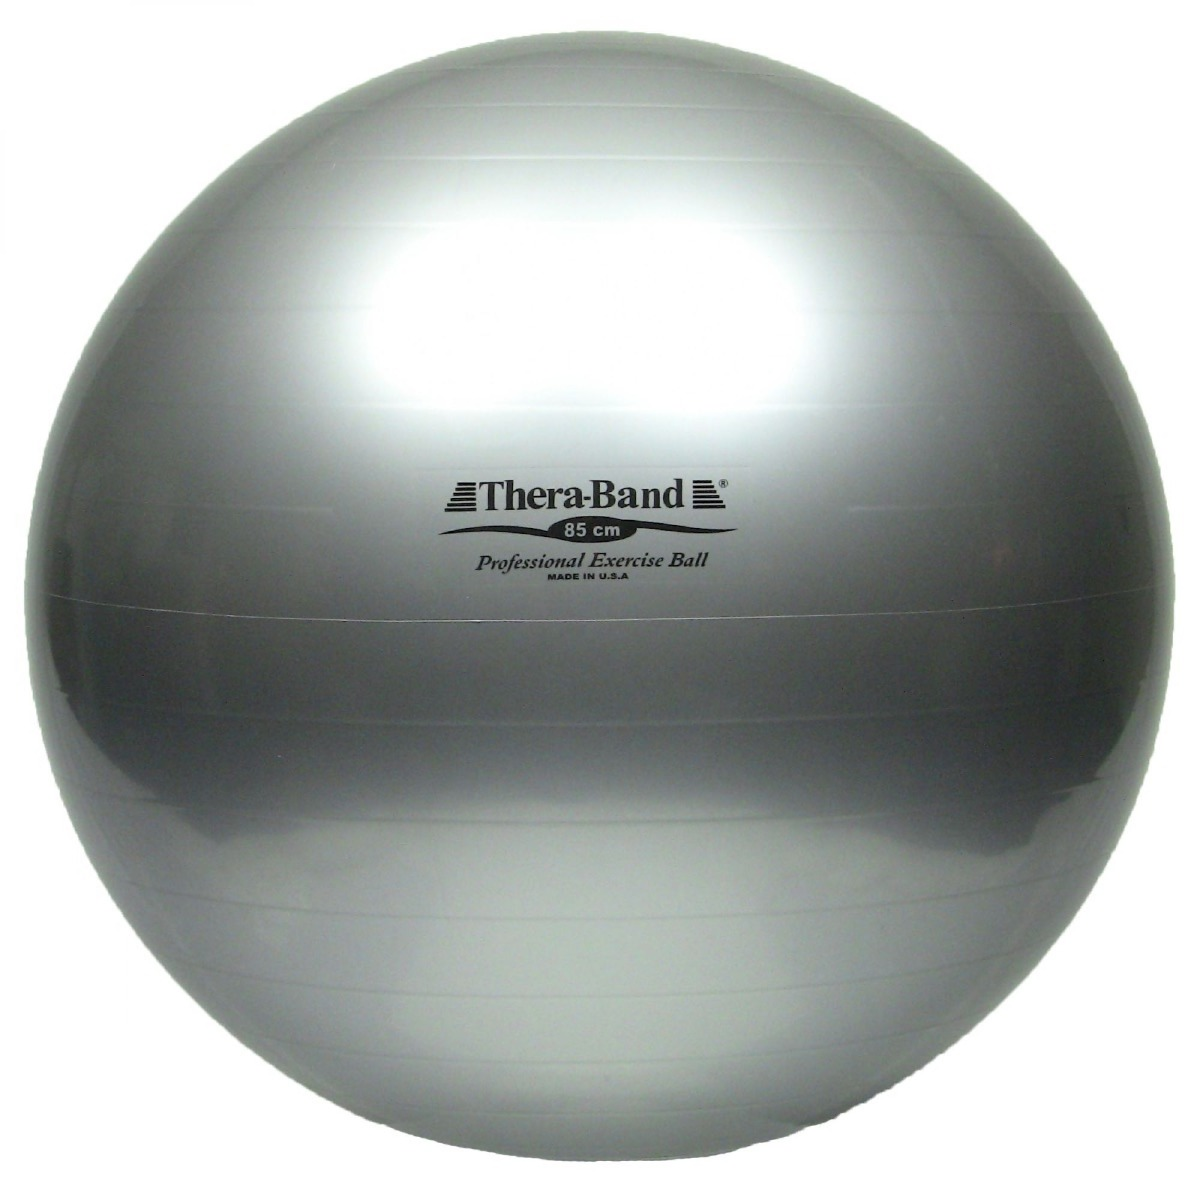 TheraBand Standard Exercise Ball, 85 cm, Silver